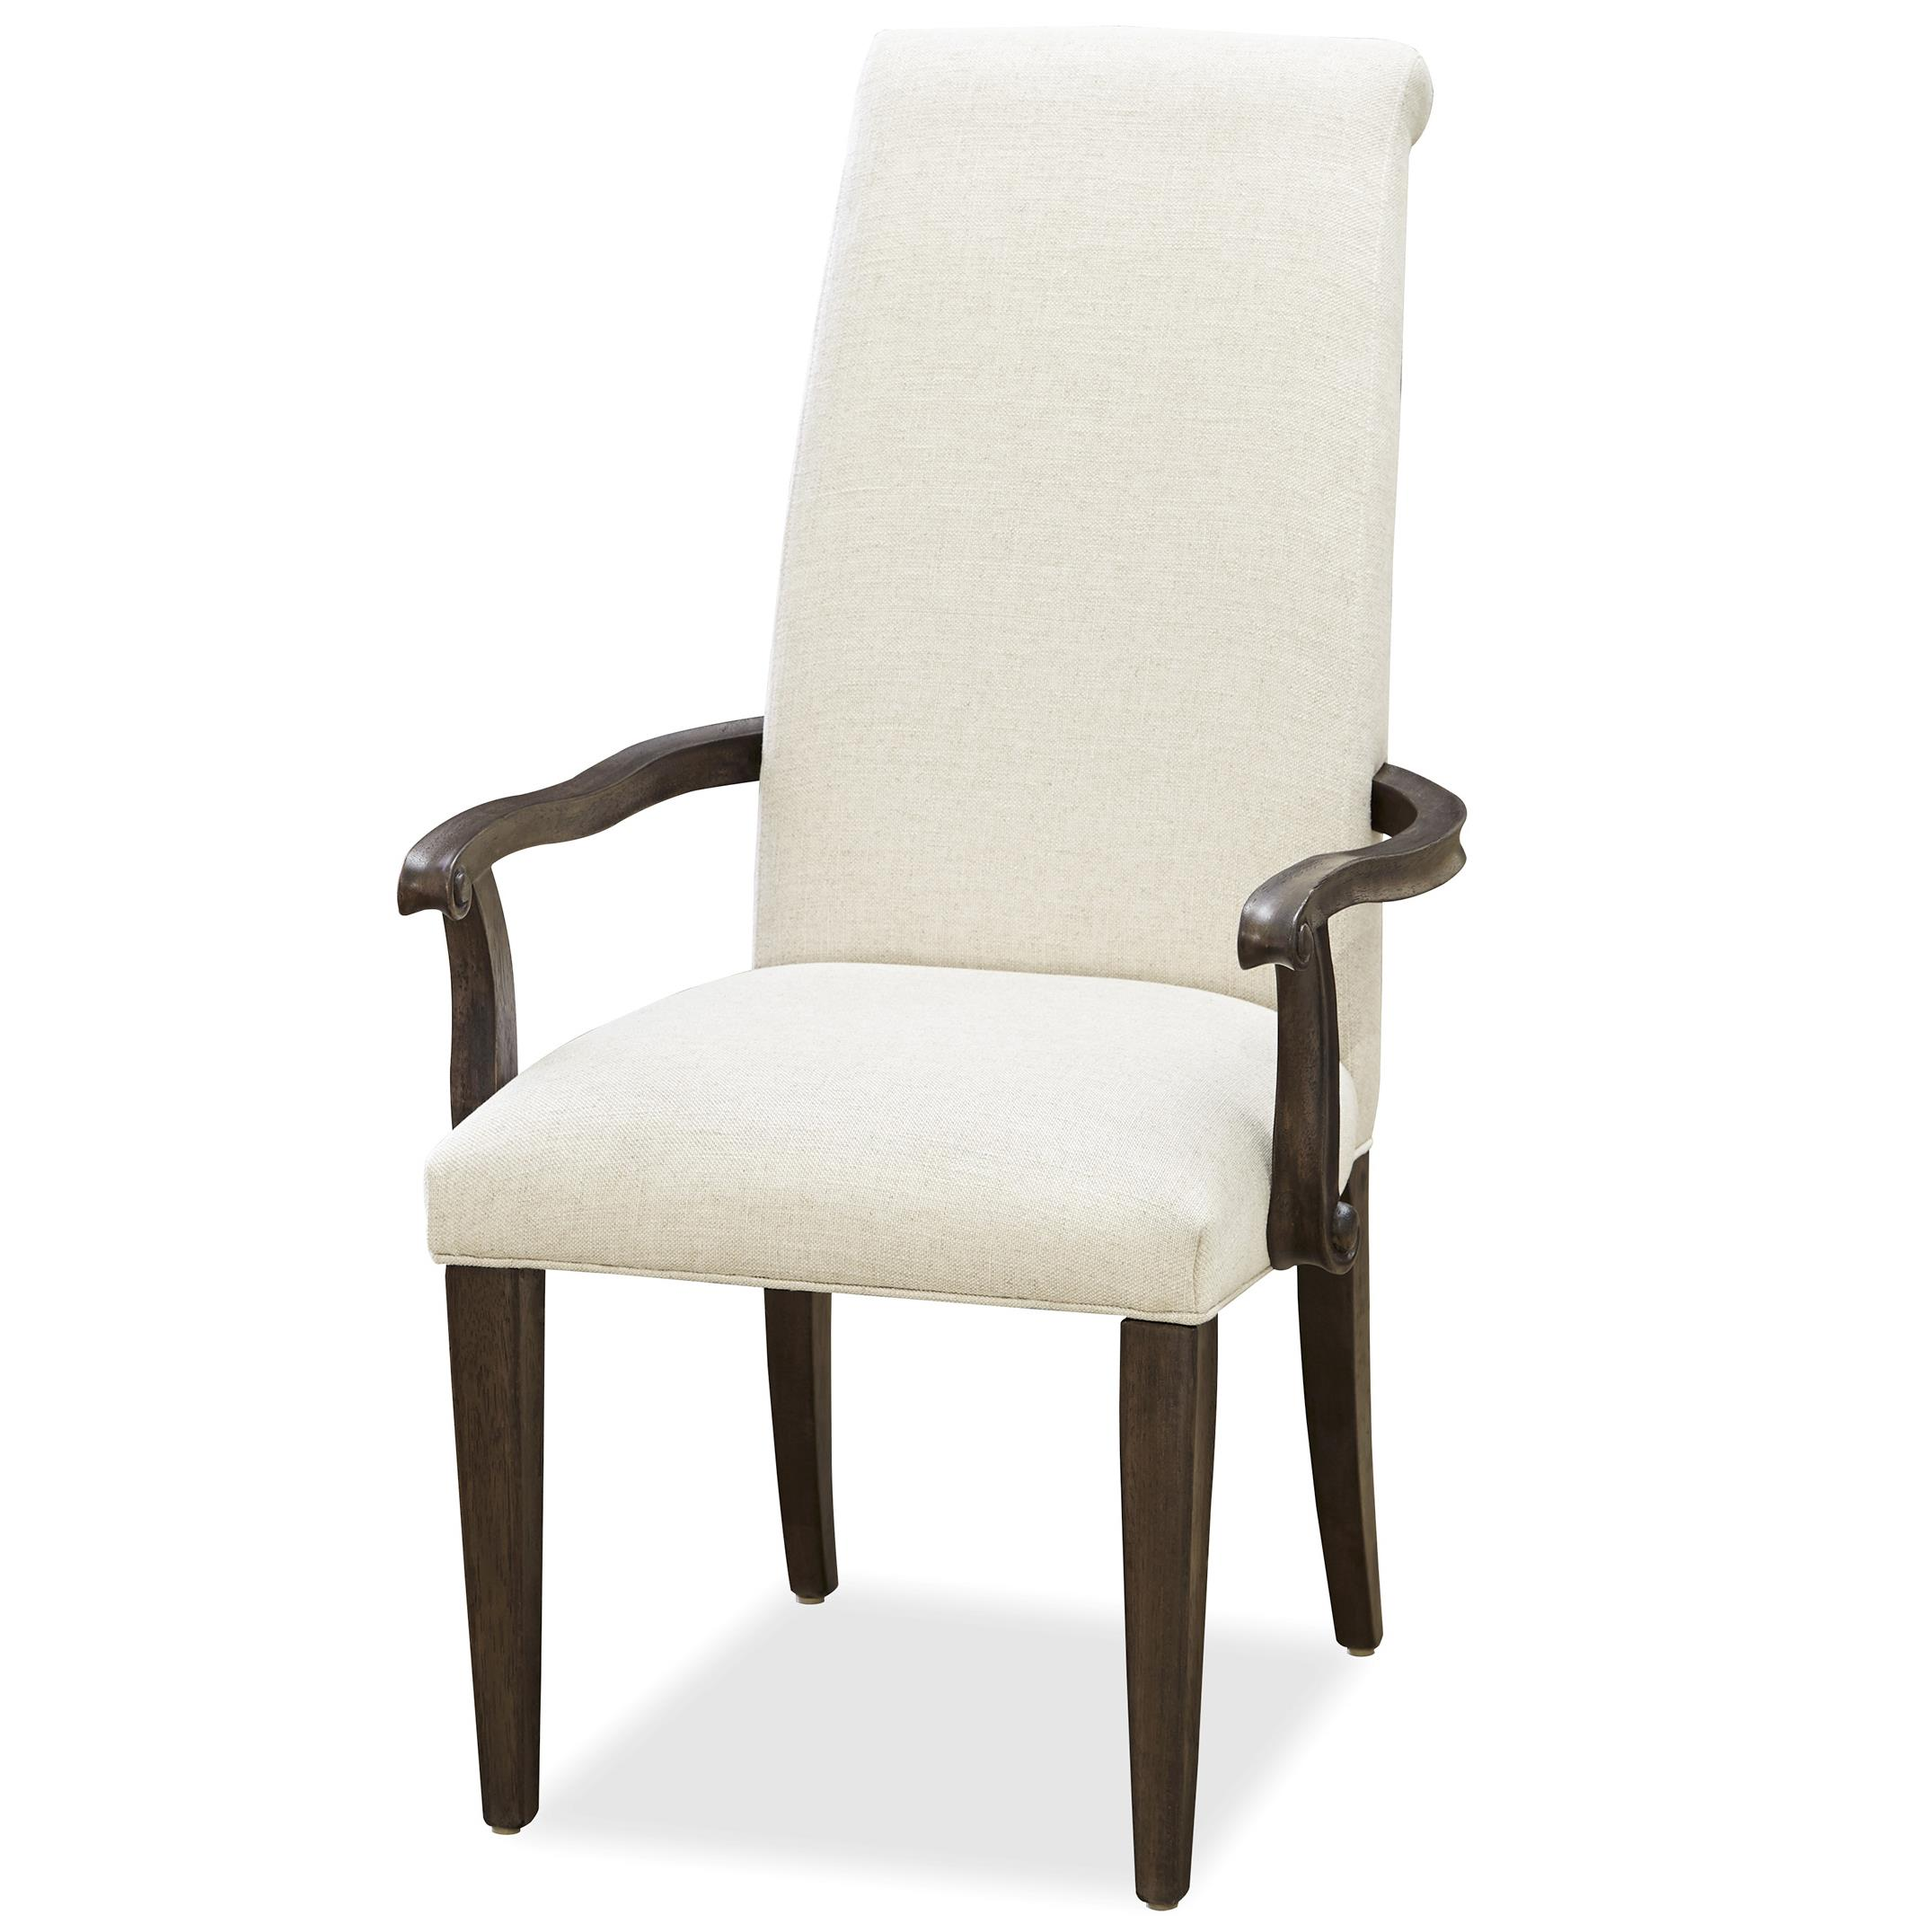 Universal California - Hollywood Hills Arm Chair - Item Number: 475639-RTA